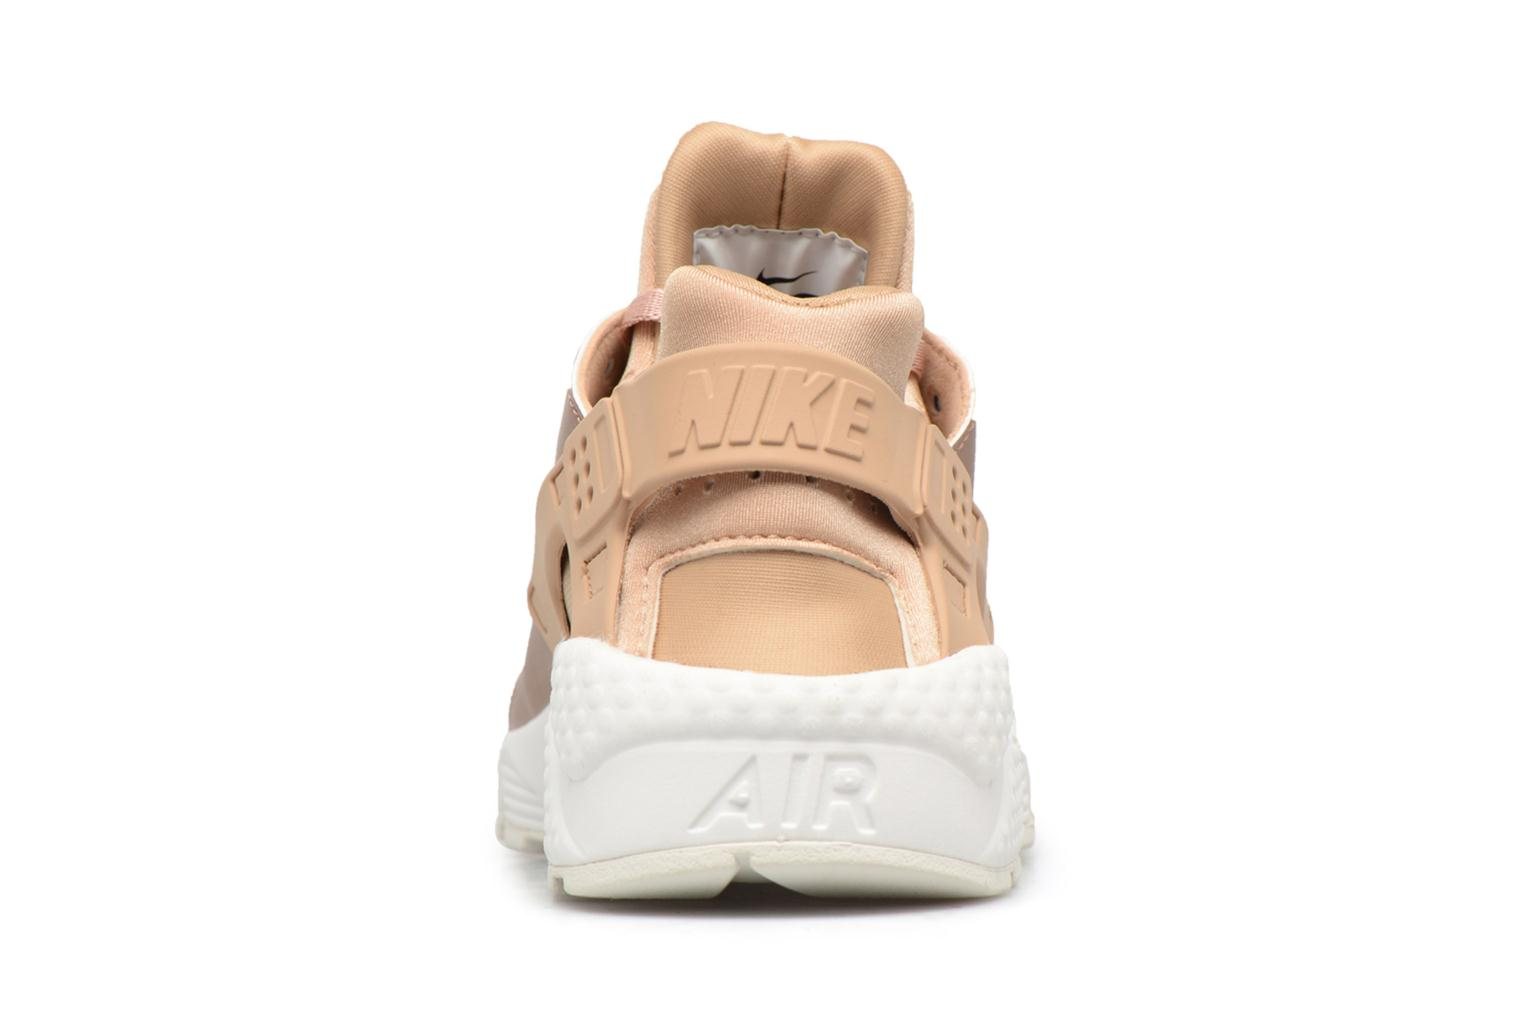 Wmns Air Huarache Run Prm Txt Elm/Mtlc Red Bronze-Summit White